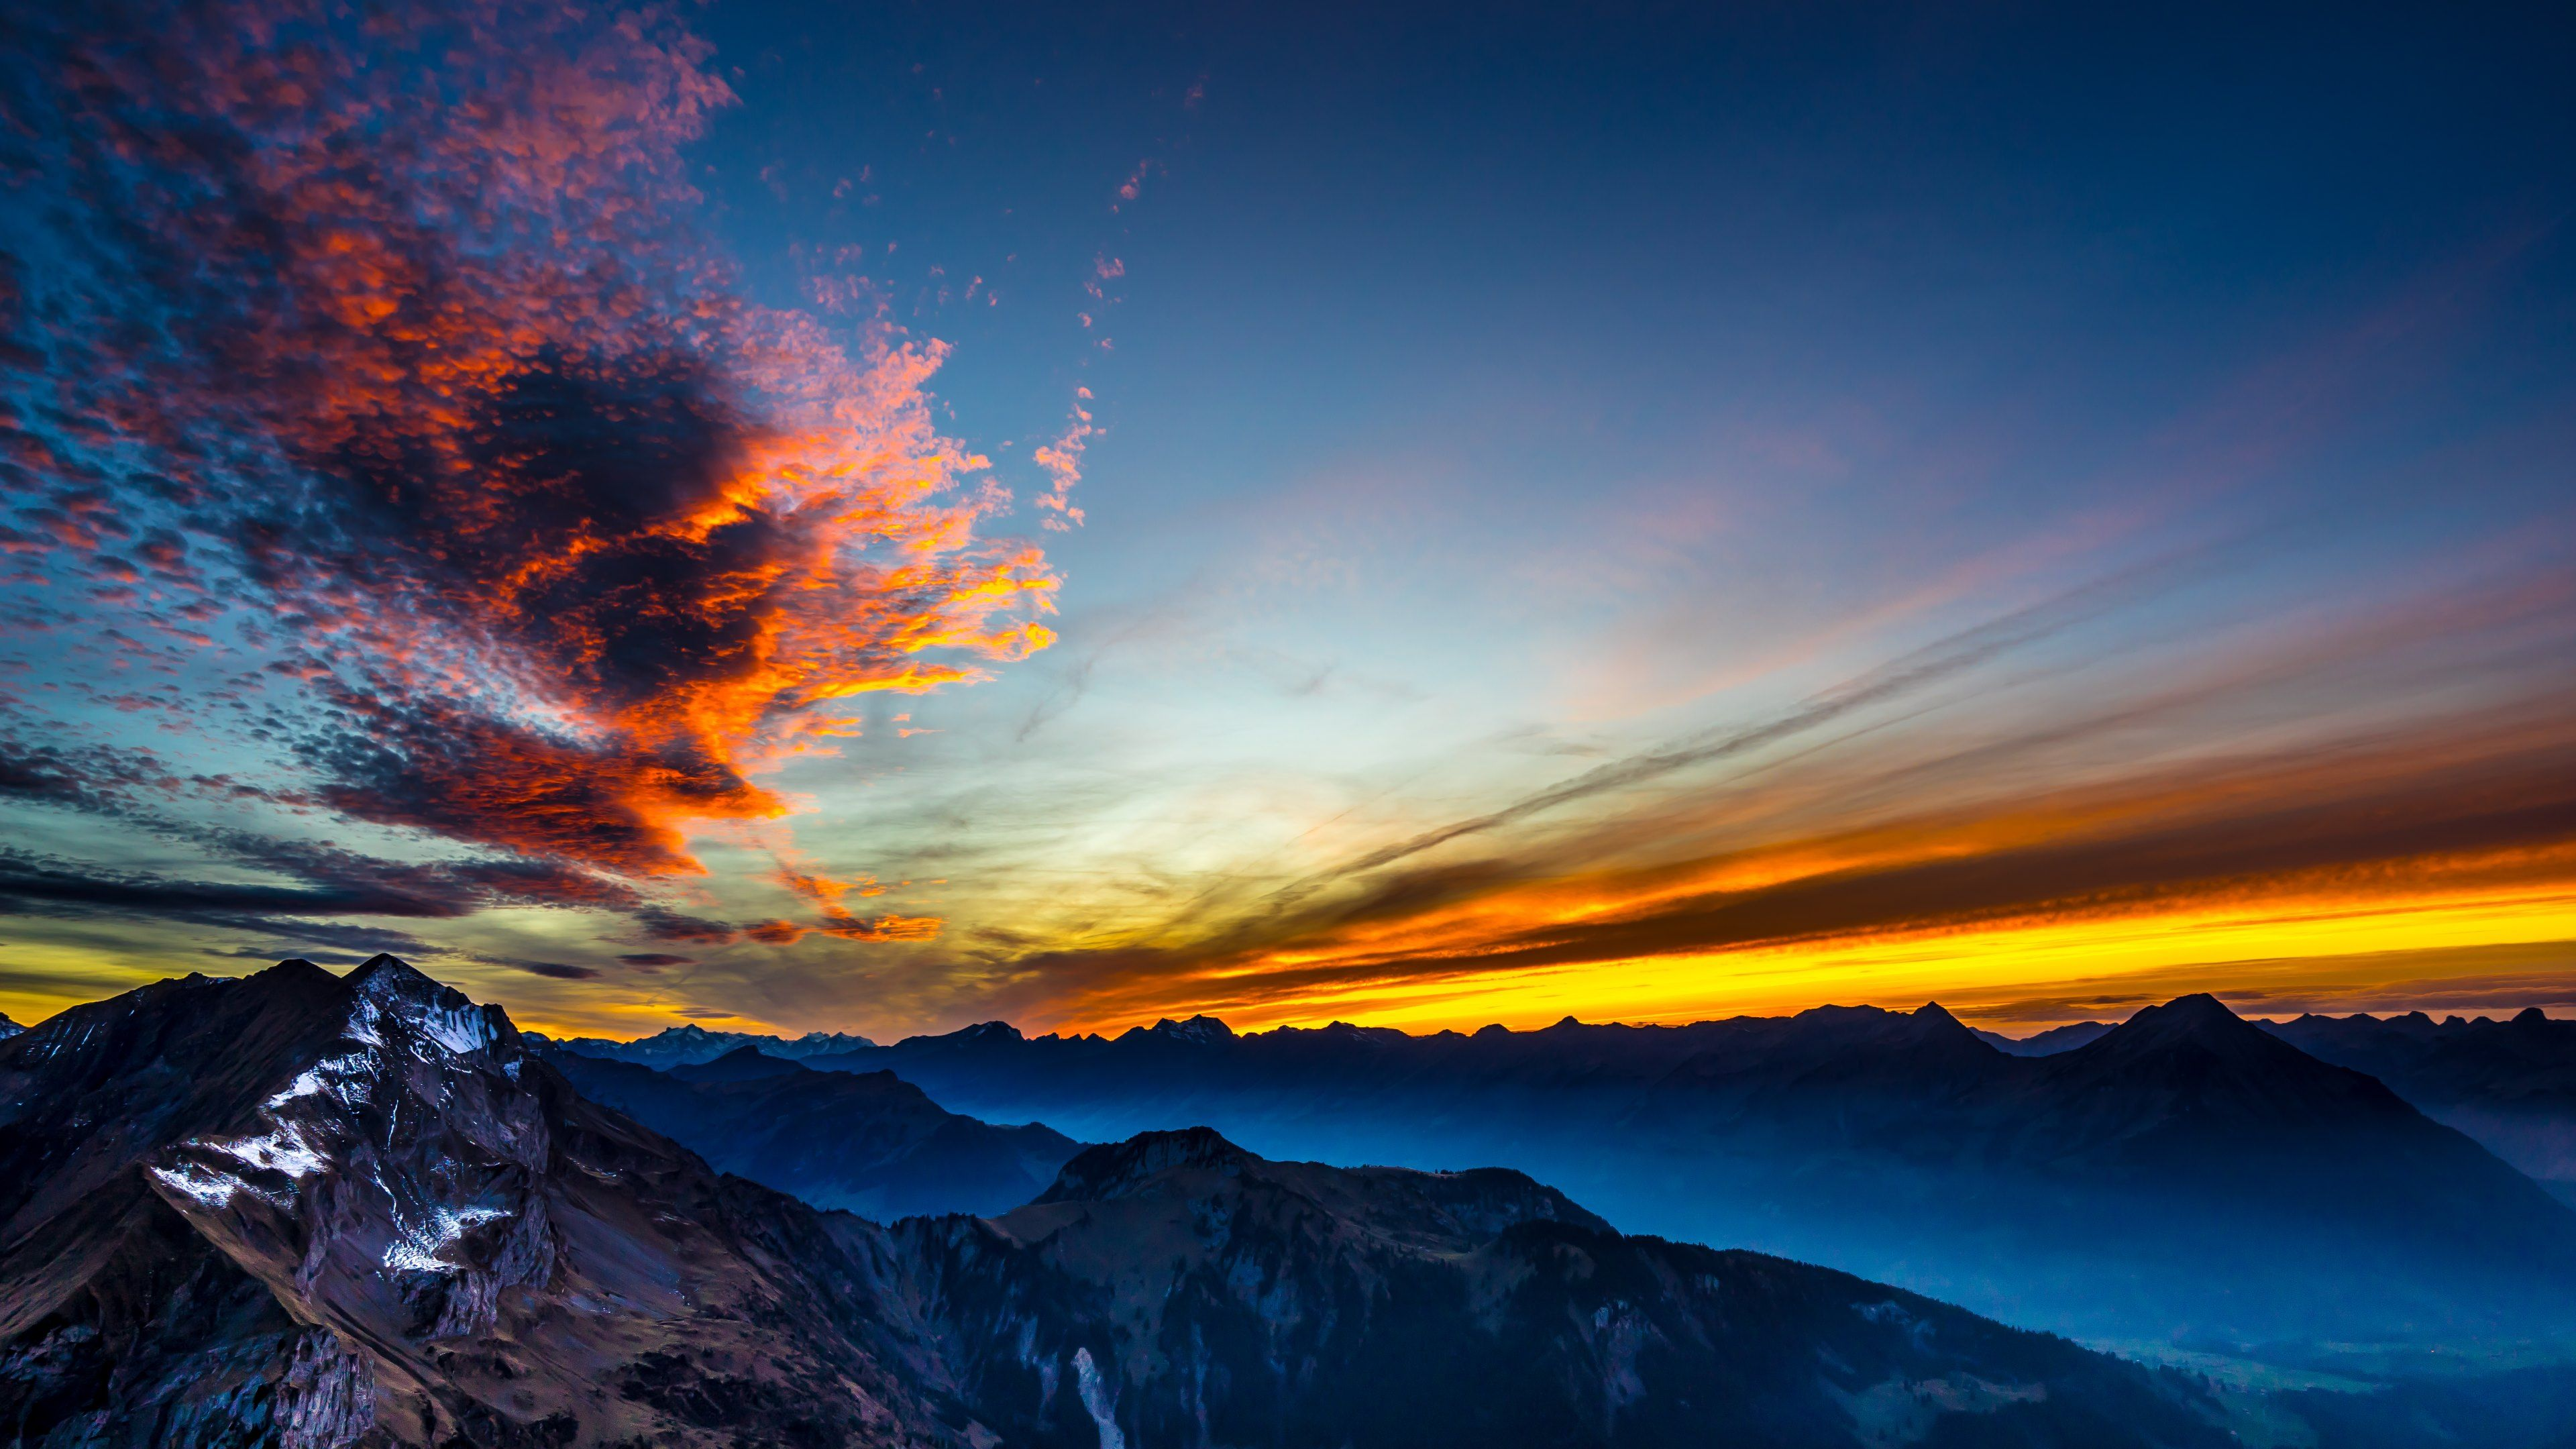 Surreal Sunset And 1st Snow Wallpapers Images 4k Background Desktop Background Pictures Hd Wallpaper